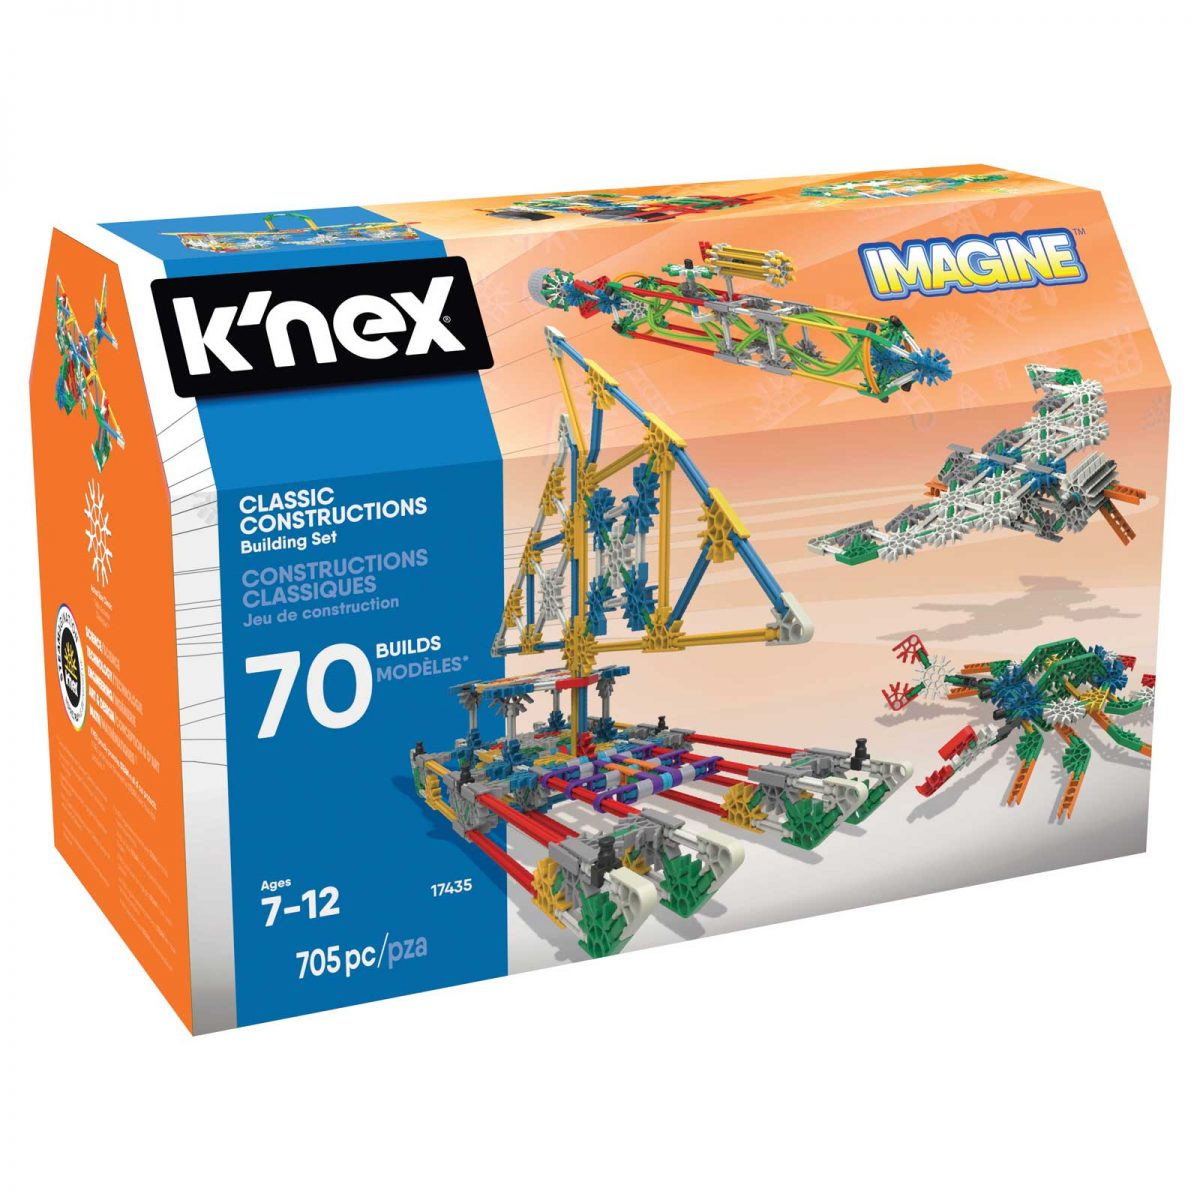 K'Nex Classic Constructions 70 Model Building Set (4M-17435)